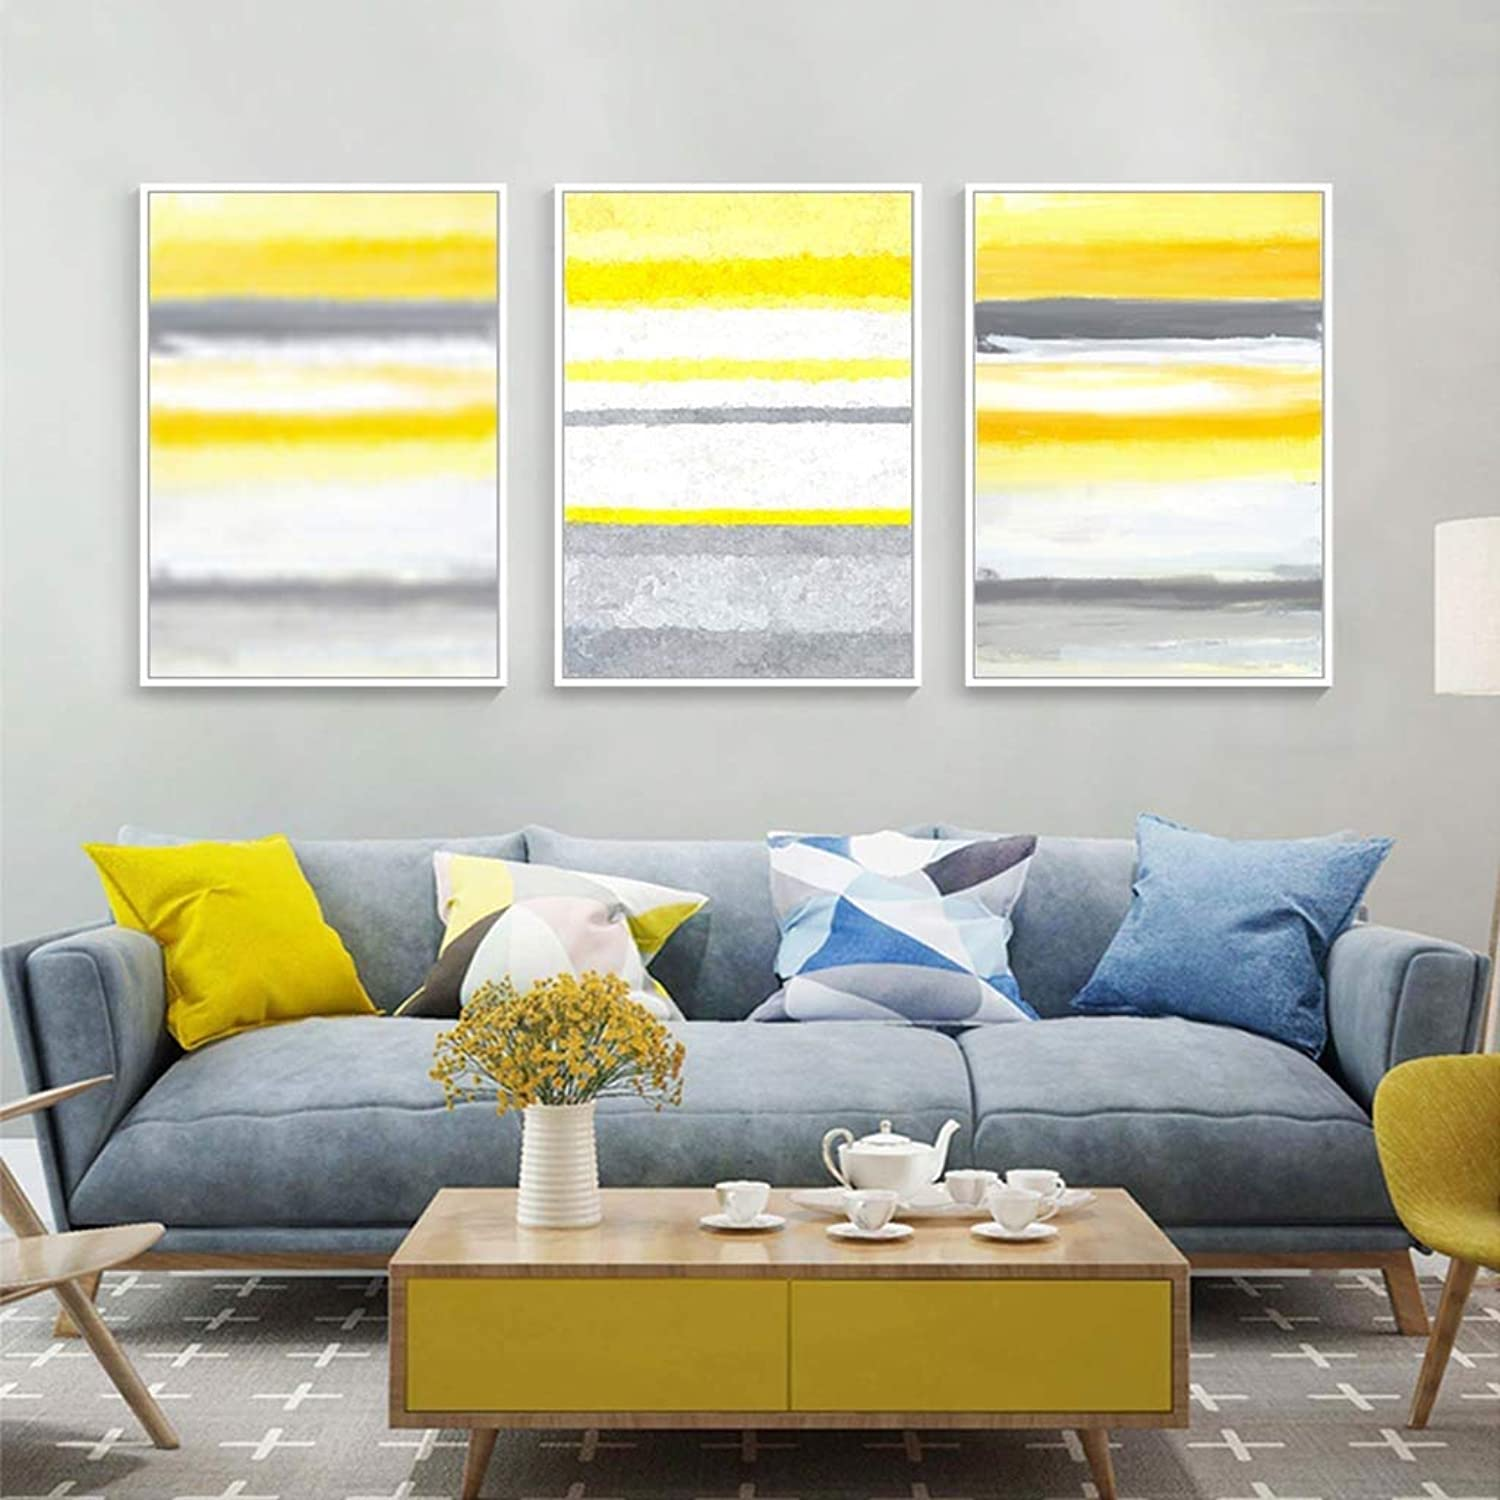 WENJUN Wall Art Picture Art On Canvas Modern Decorative Artwork Abstract Art Wall Painting For Home Decoration Wall Decor,3 Piece,5 colors,3 Sizes ( color   D , Size   5070CM )